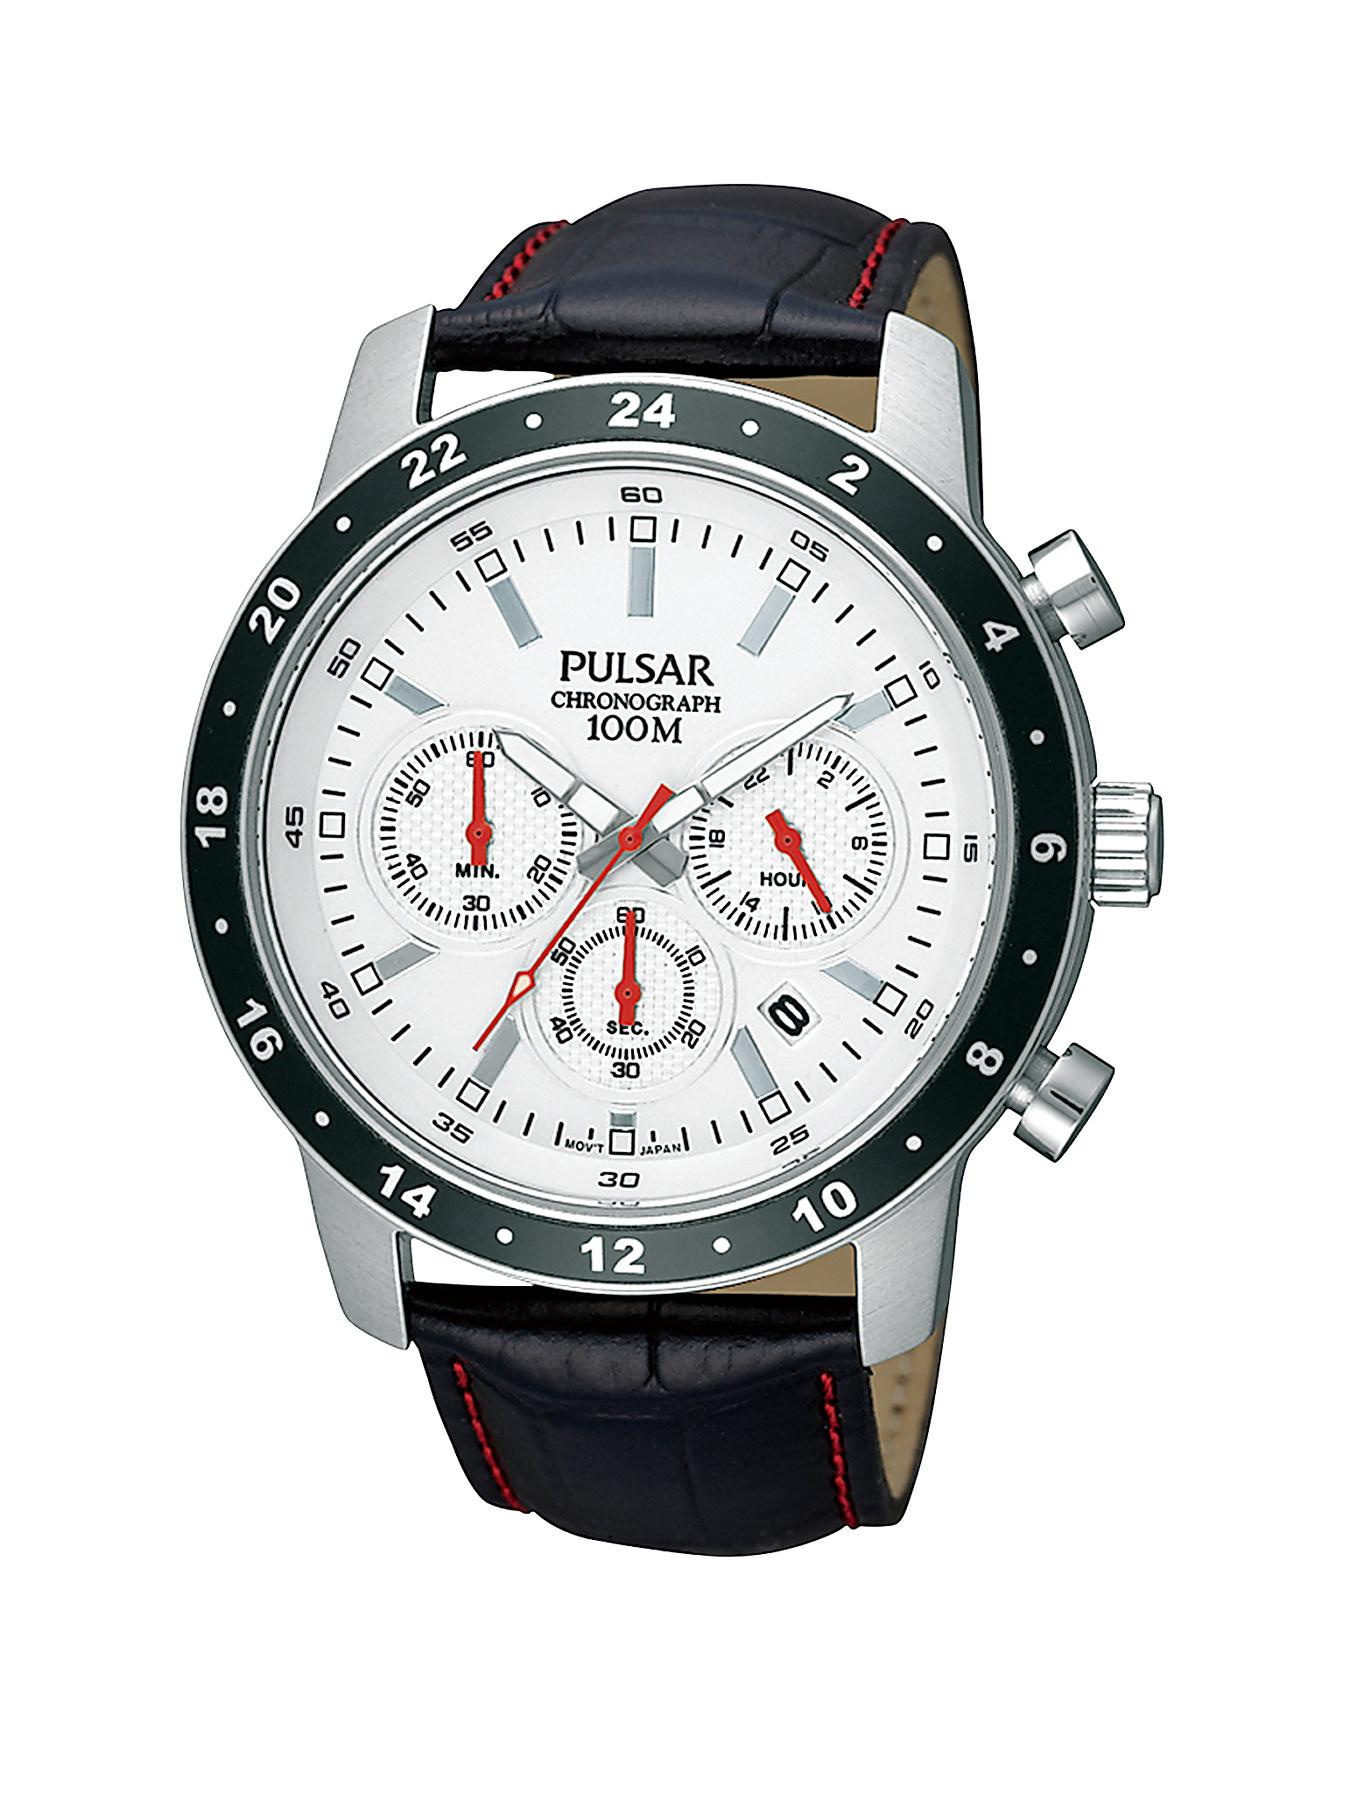 Pulsar Chronograph Leather Strap Mens Watch